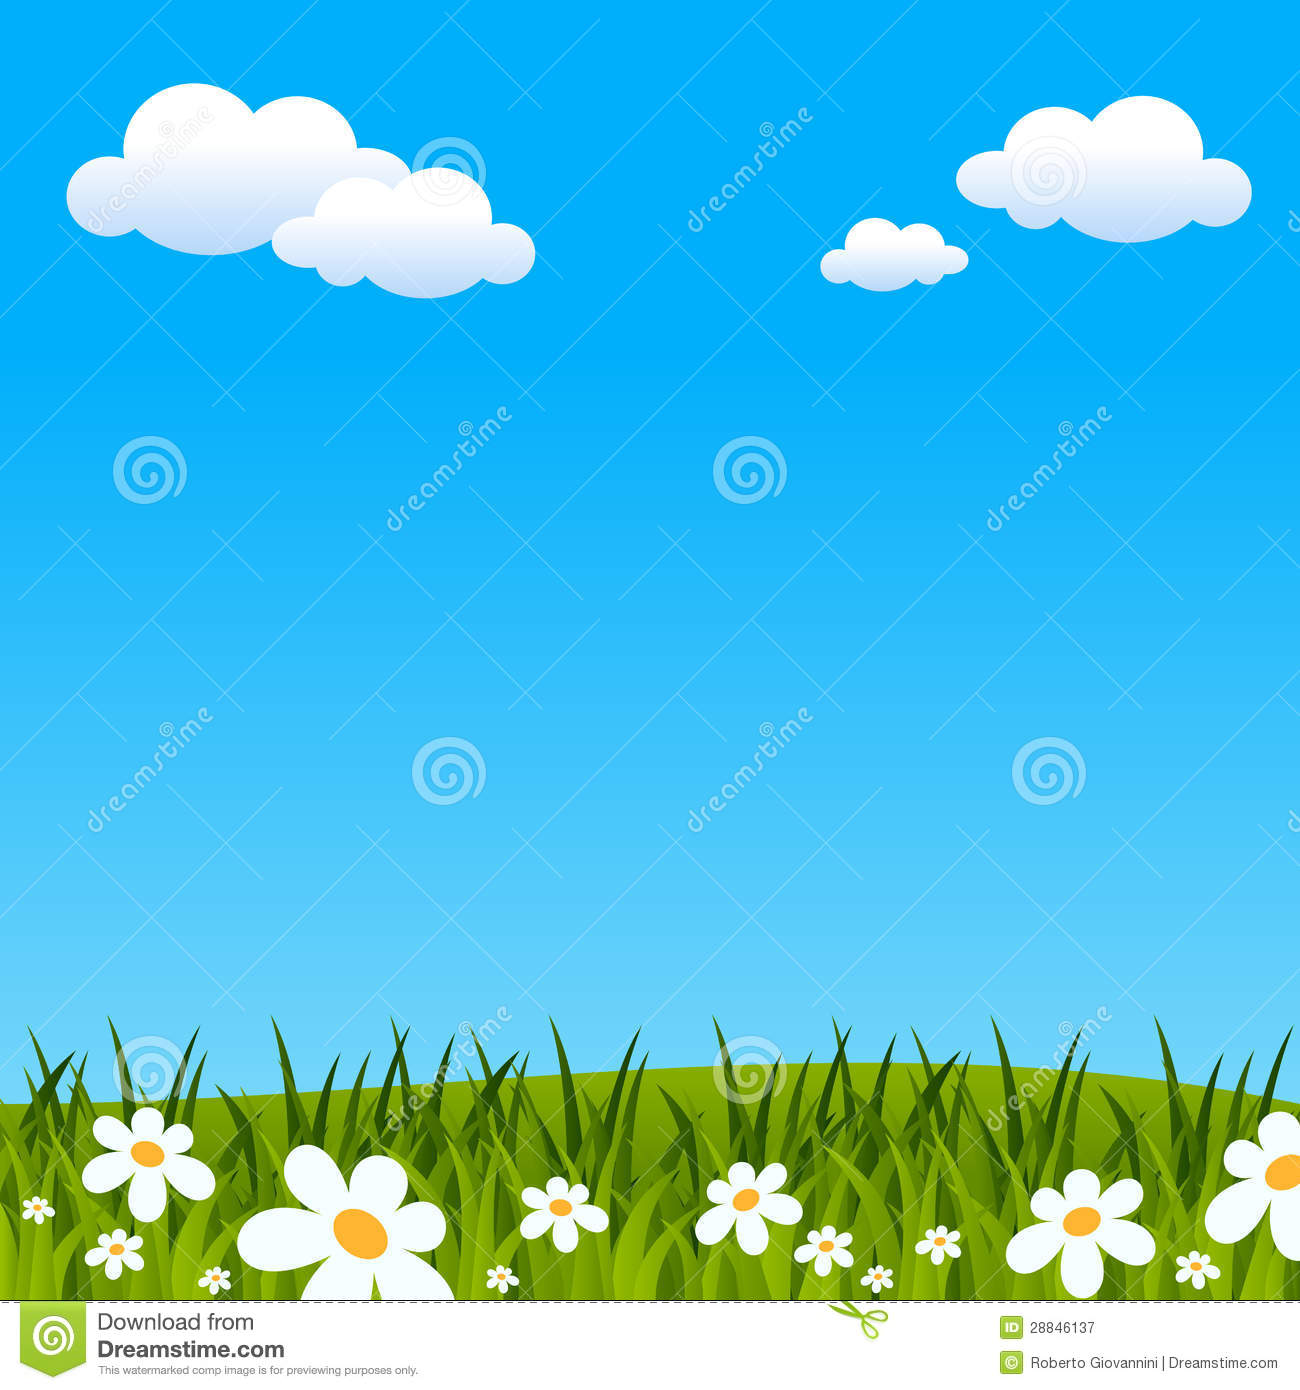 Easter or Spring Background - Free Clipart Backgrounds